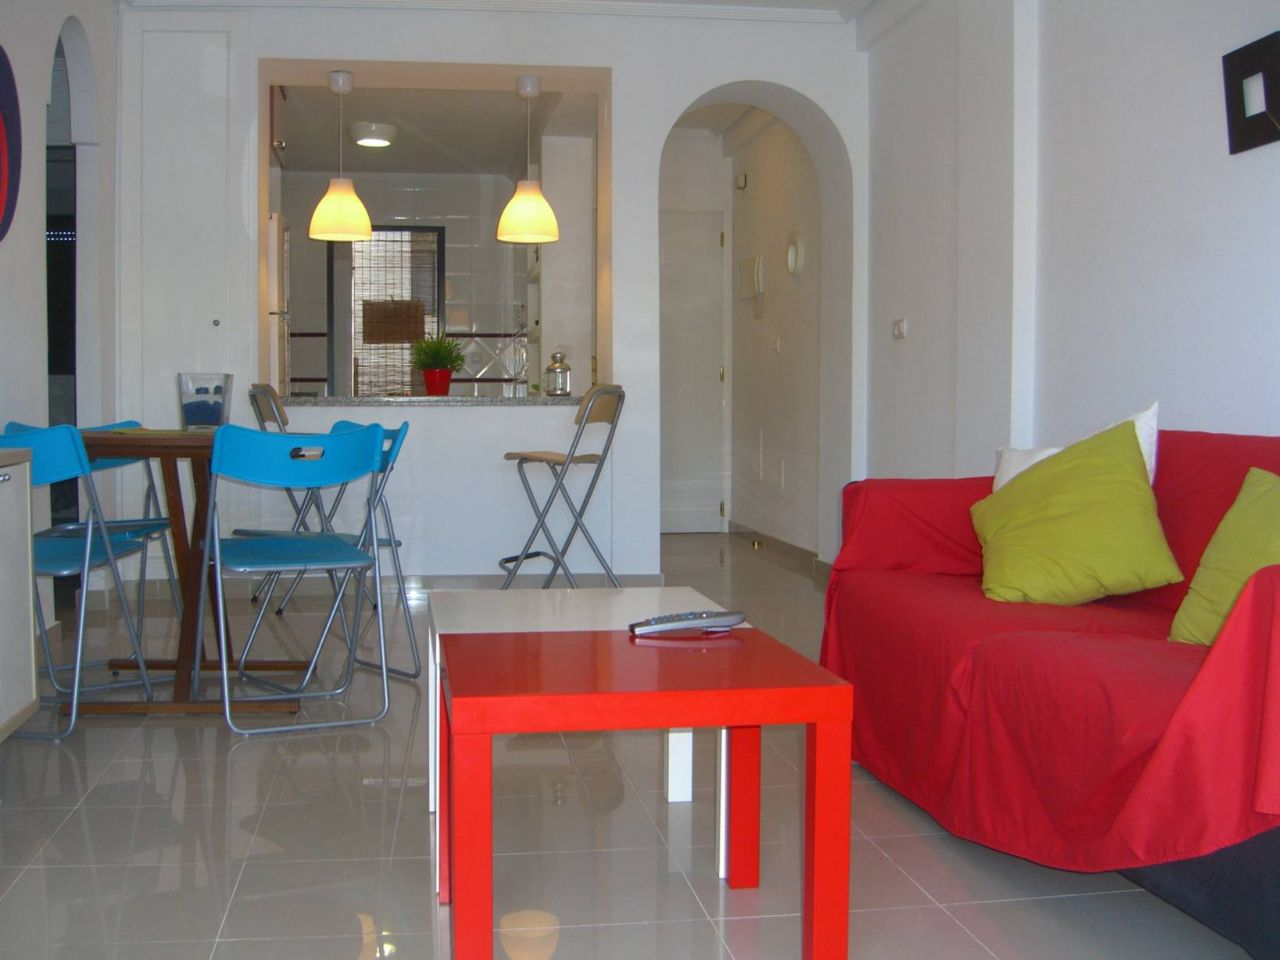 Propery For Sale in Dehesa de Campoamor, Spain image 1